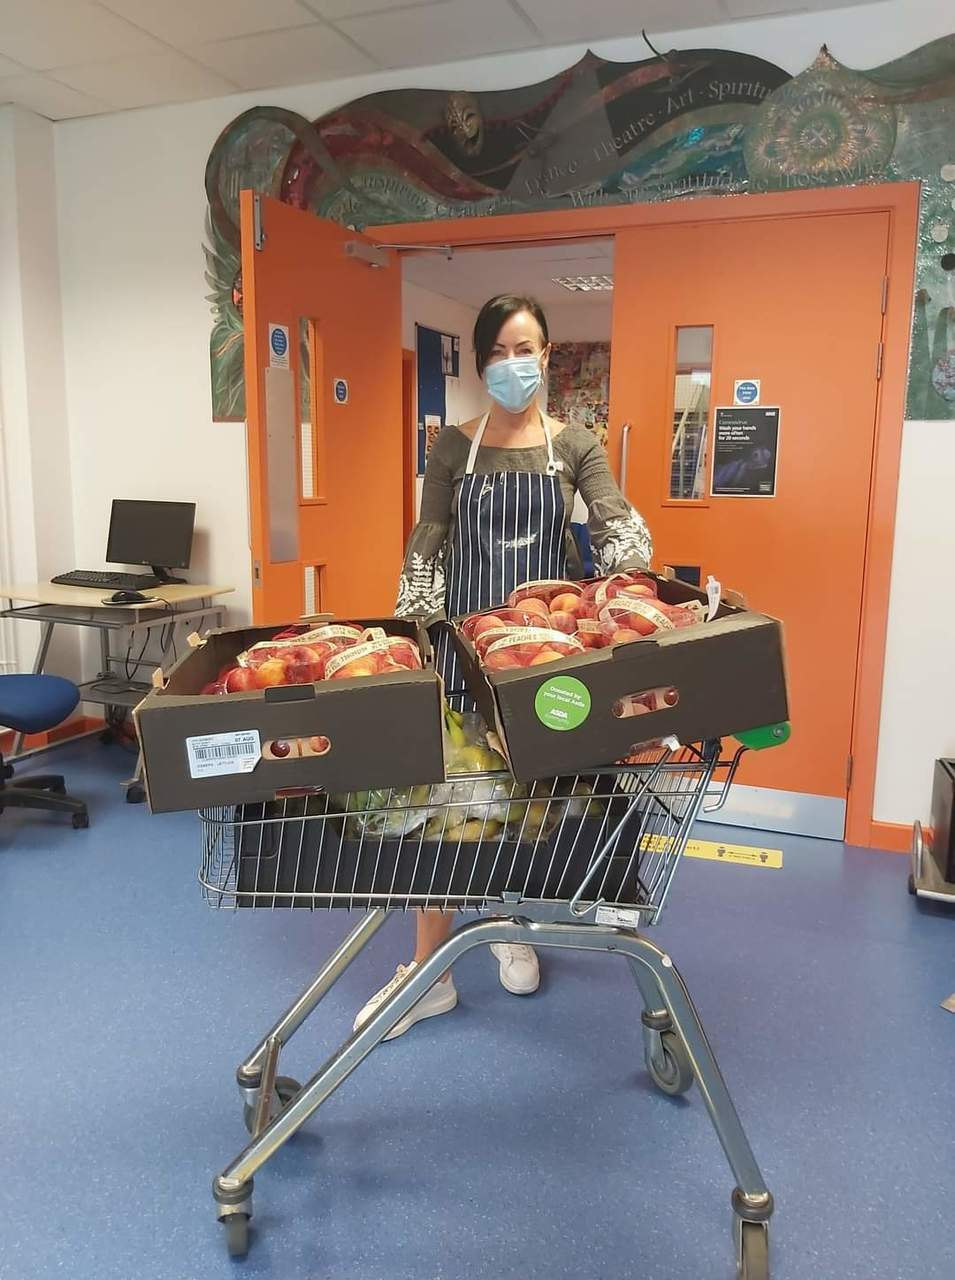 Working with The Kindle Centre to give fresh fruit to families | Asda Hereford